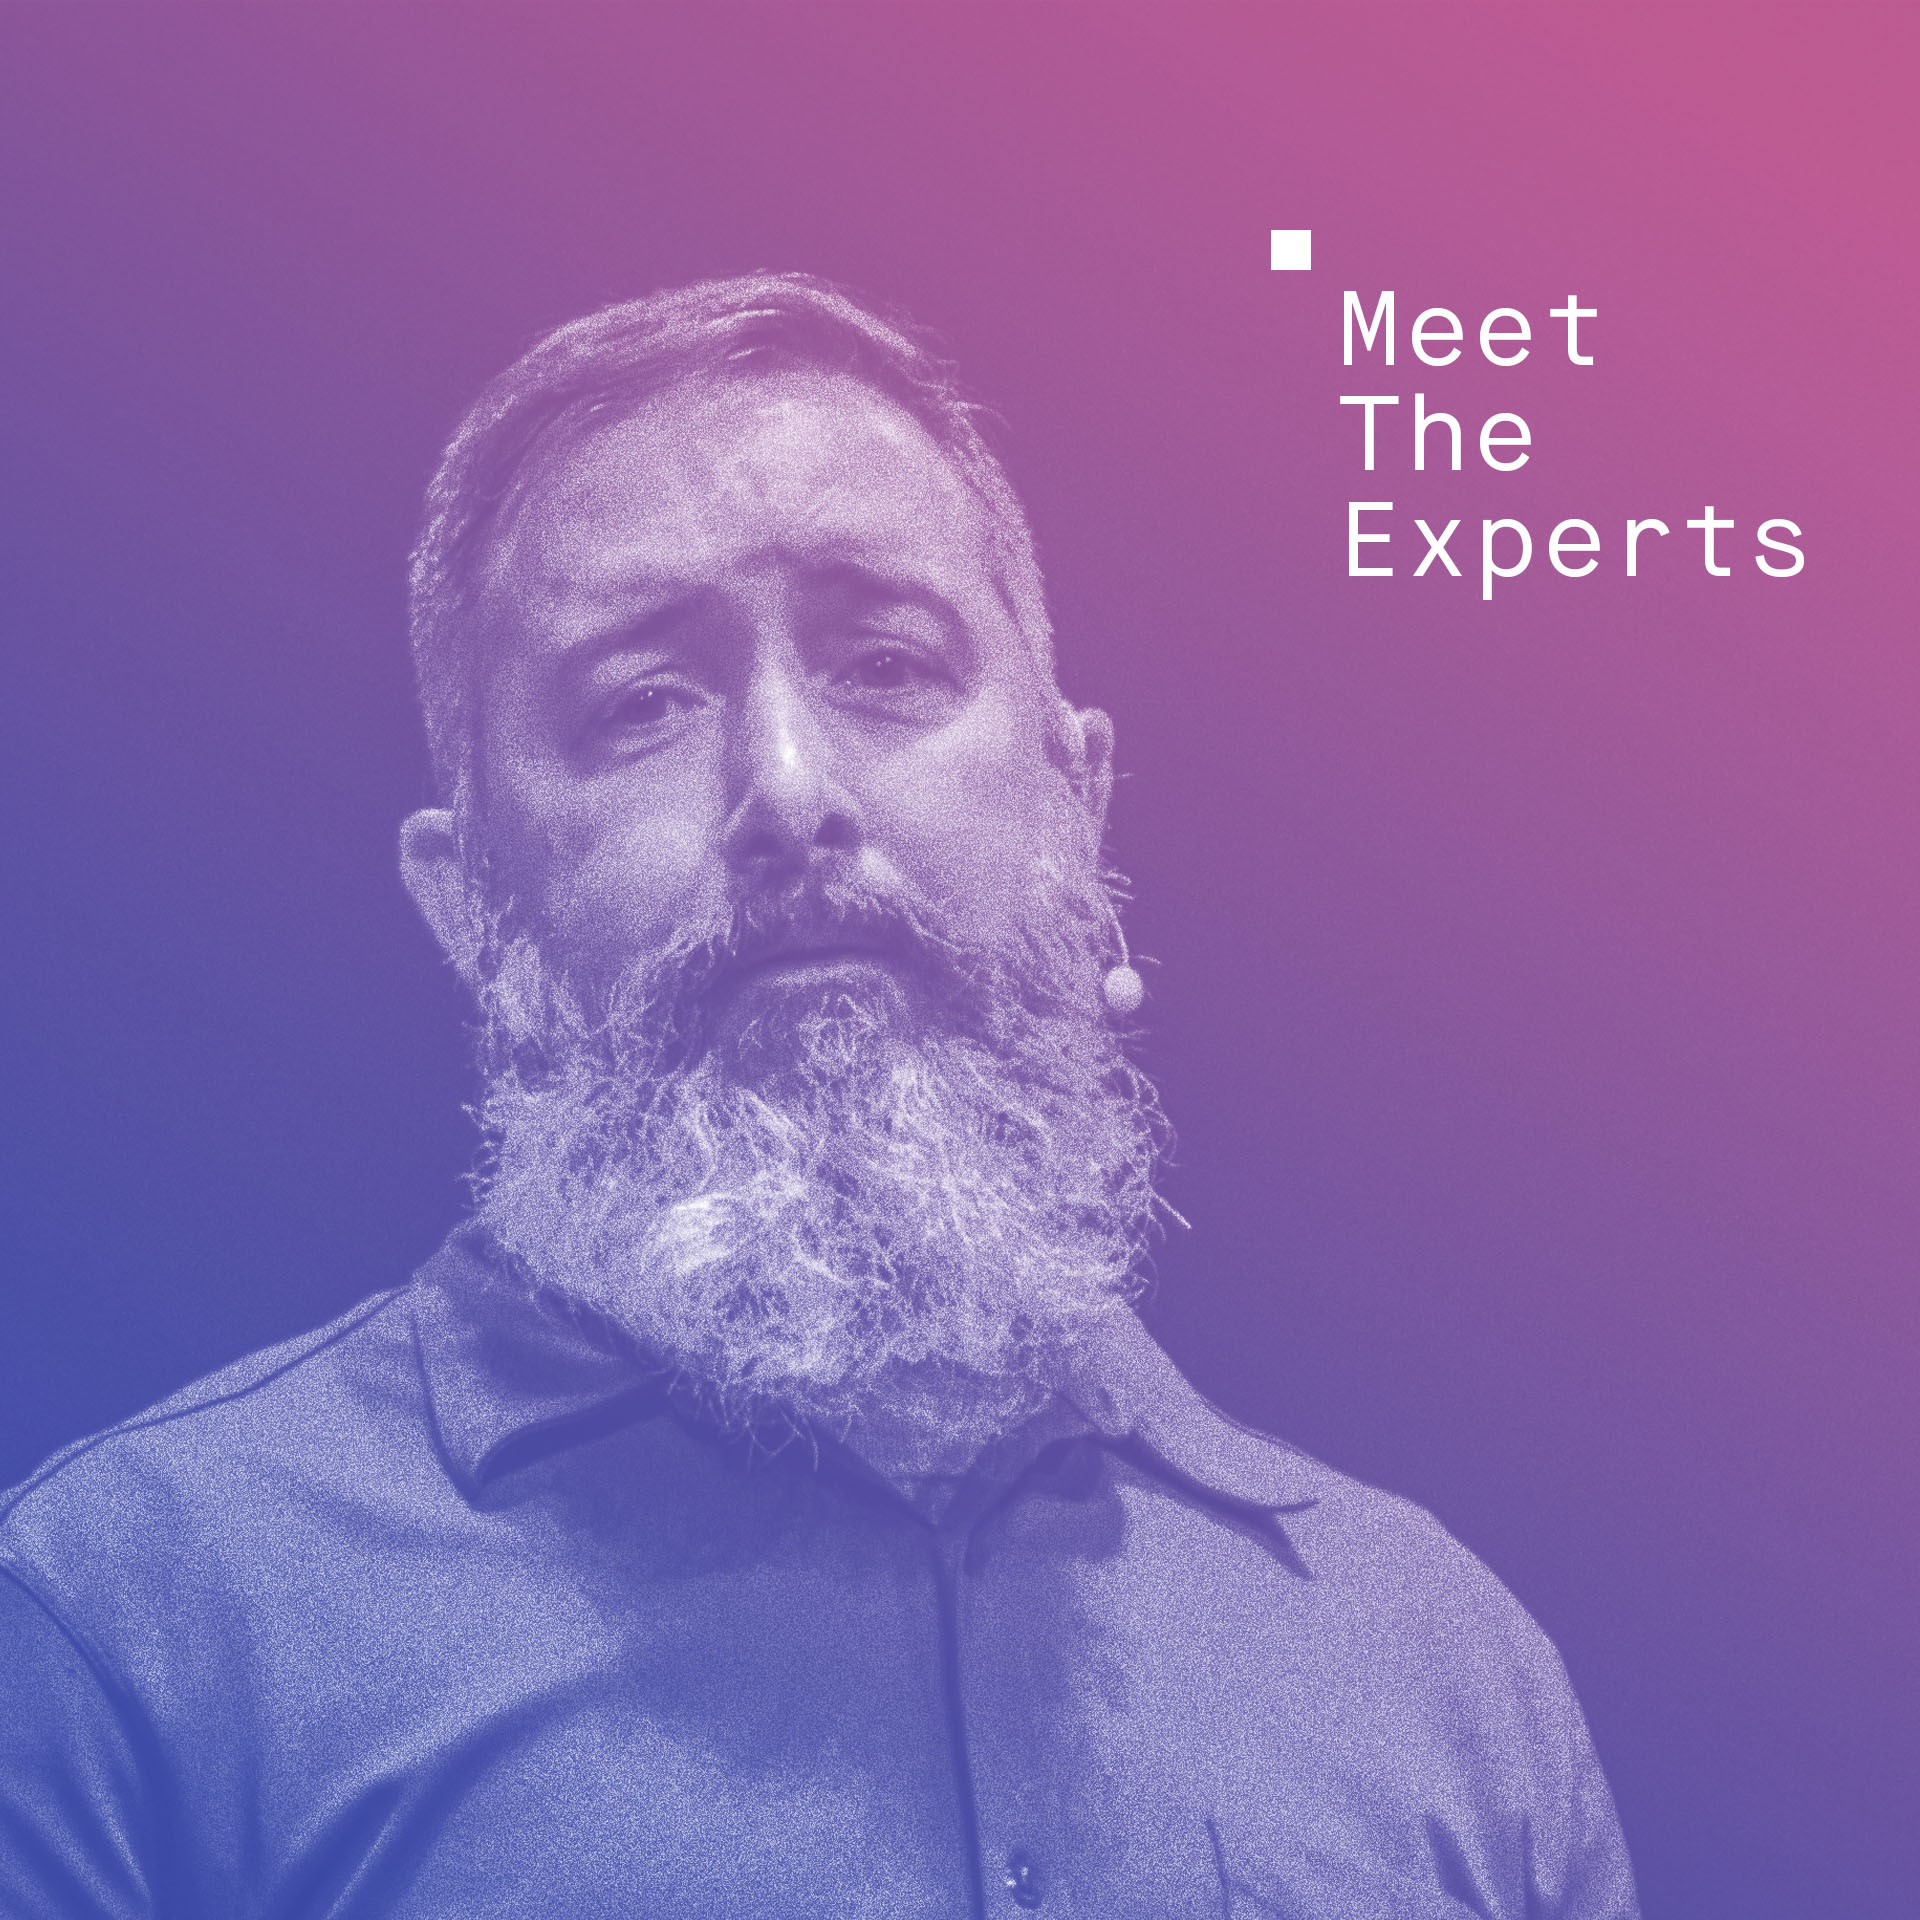 Meet the Experts: Portland insider Rick Turoczy